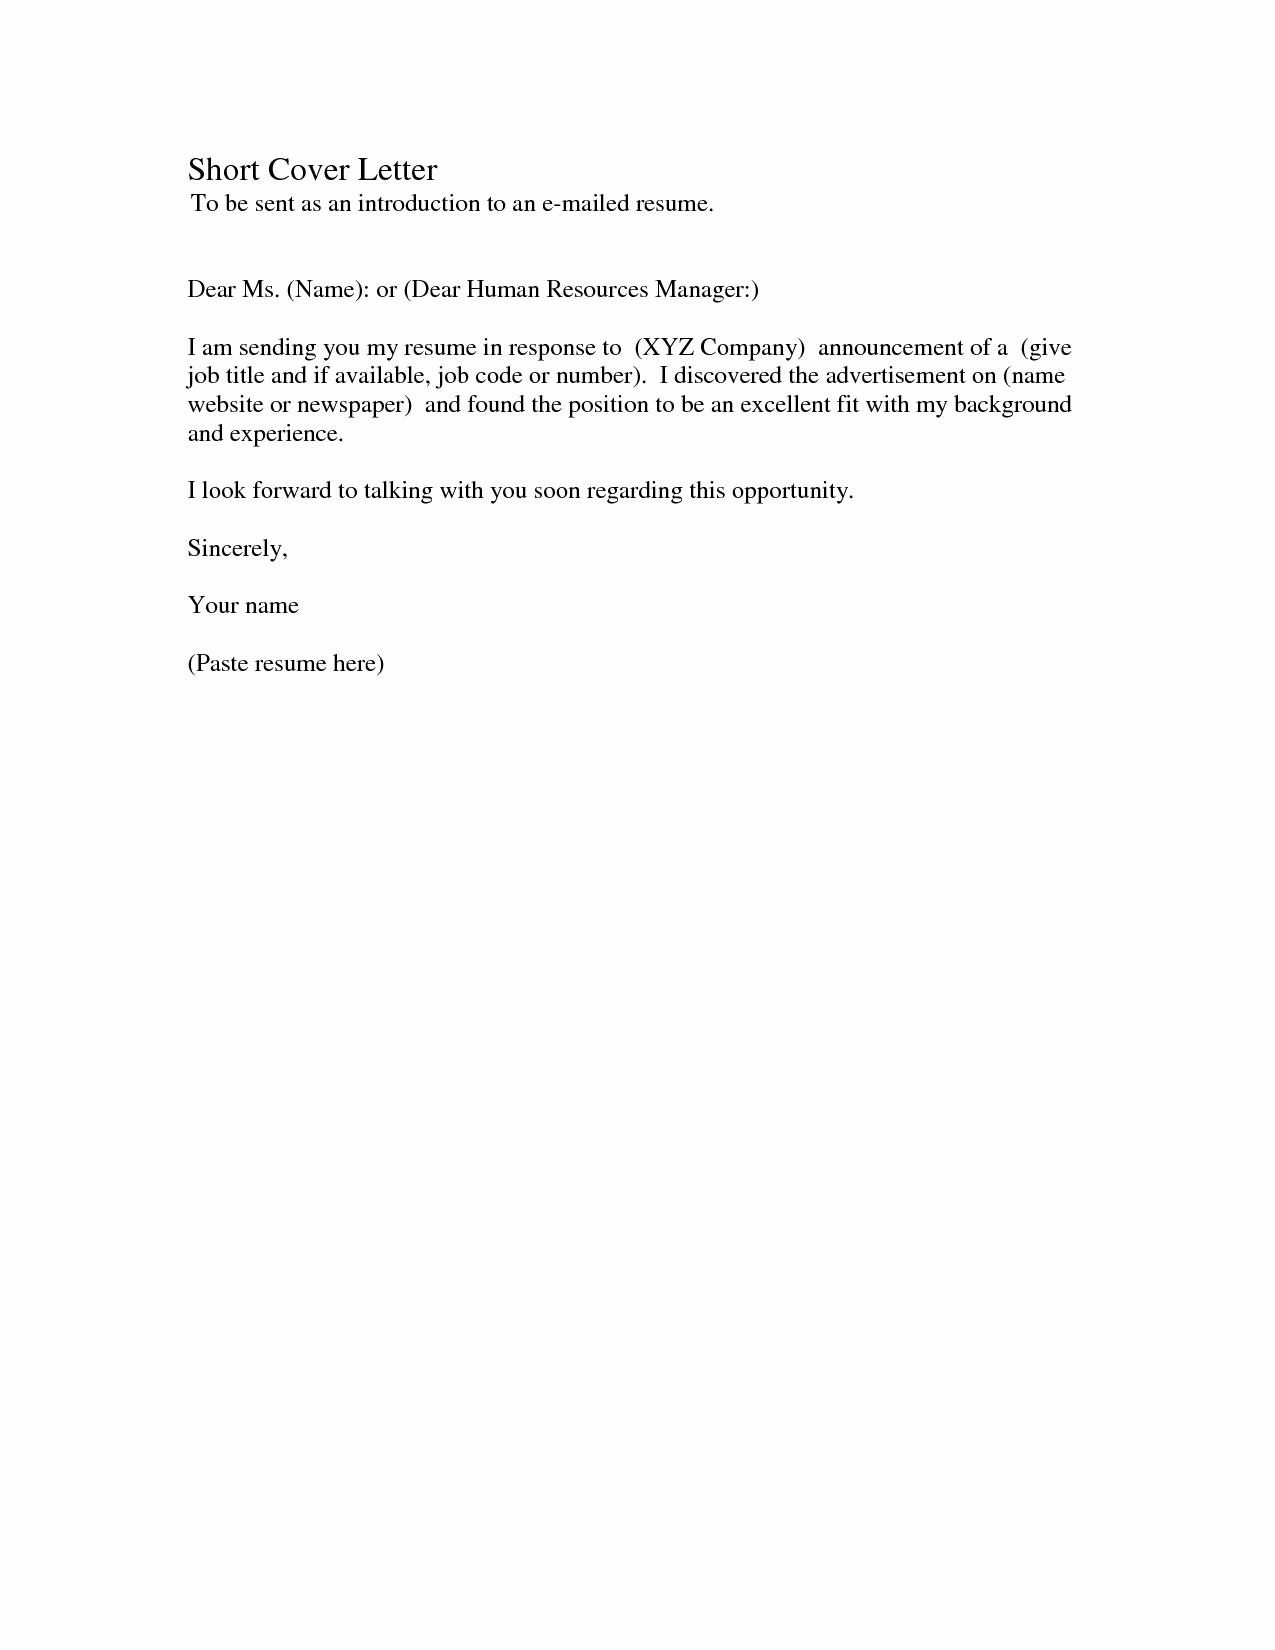 Sample Of Simple Cover Letter Awesome Short Cover Letter